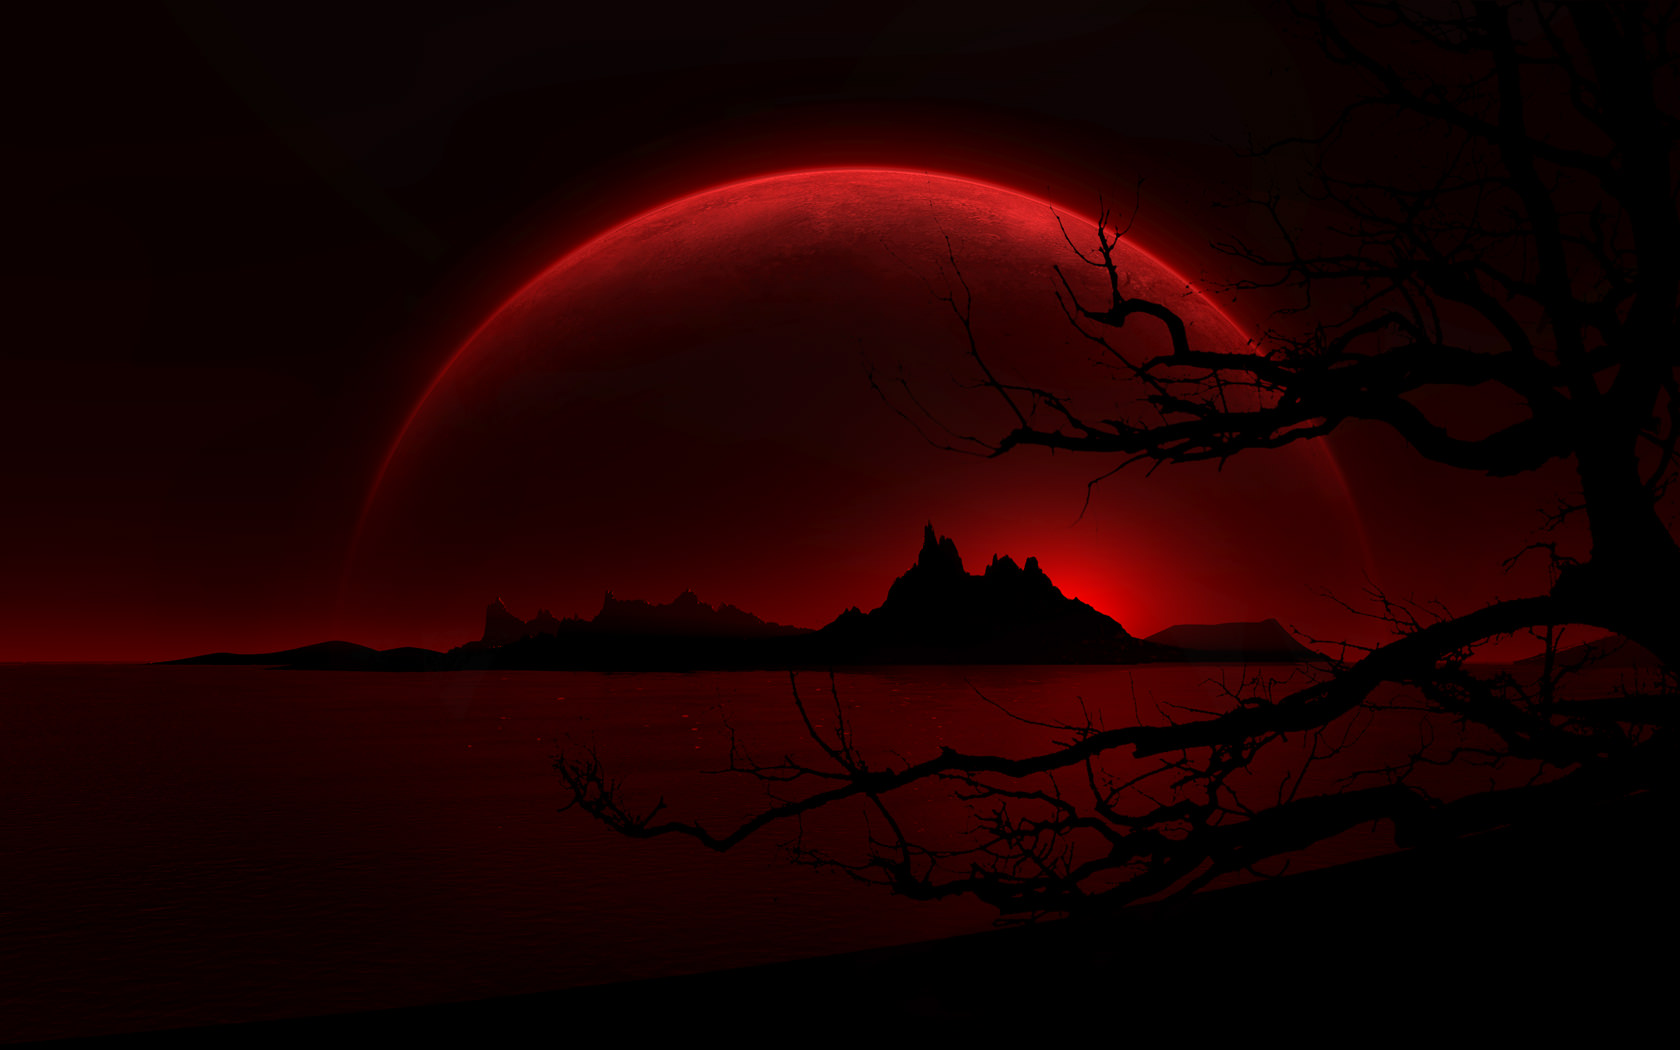 Dark Landscape Red Moon Wallpaper